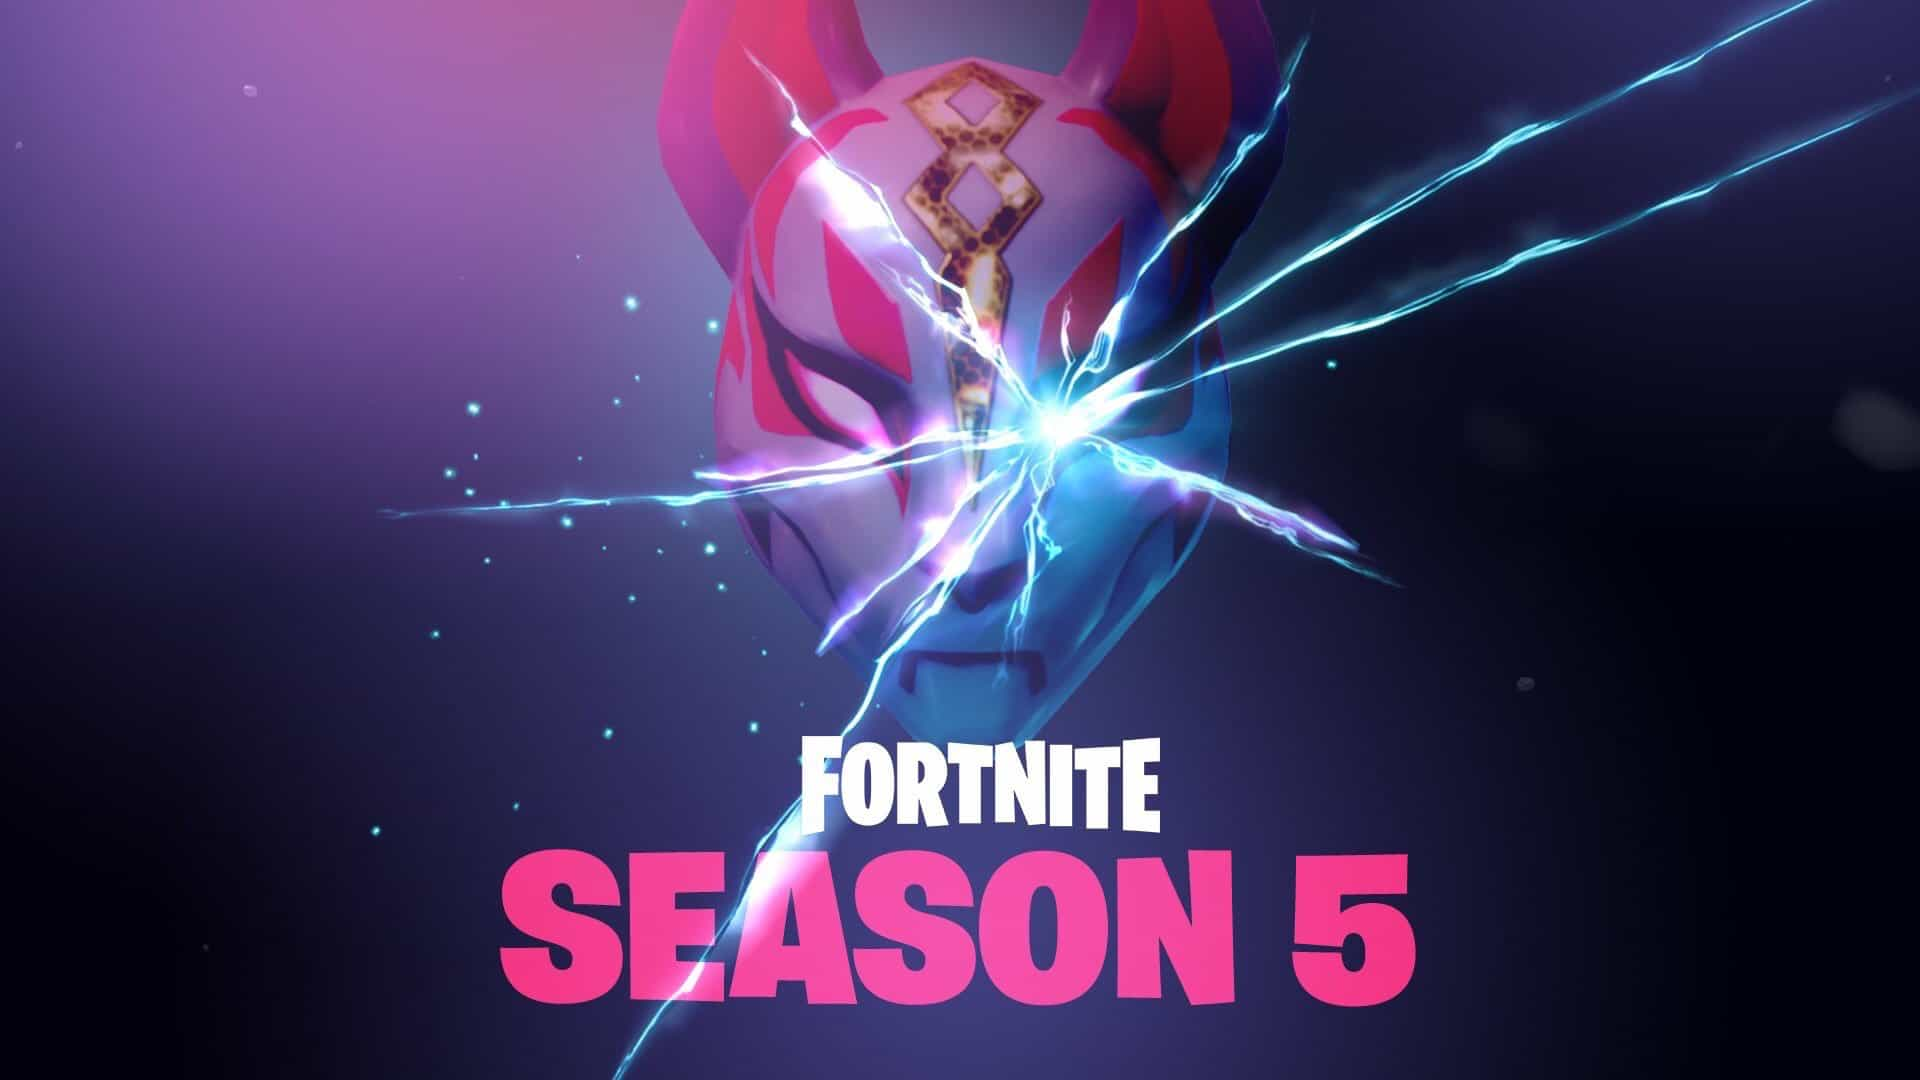 Fortnite season 5 adds new locations, second vehicle, lots more